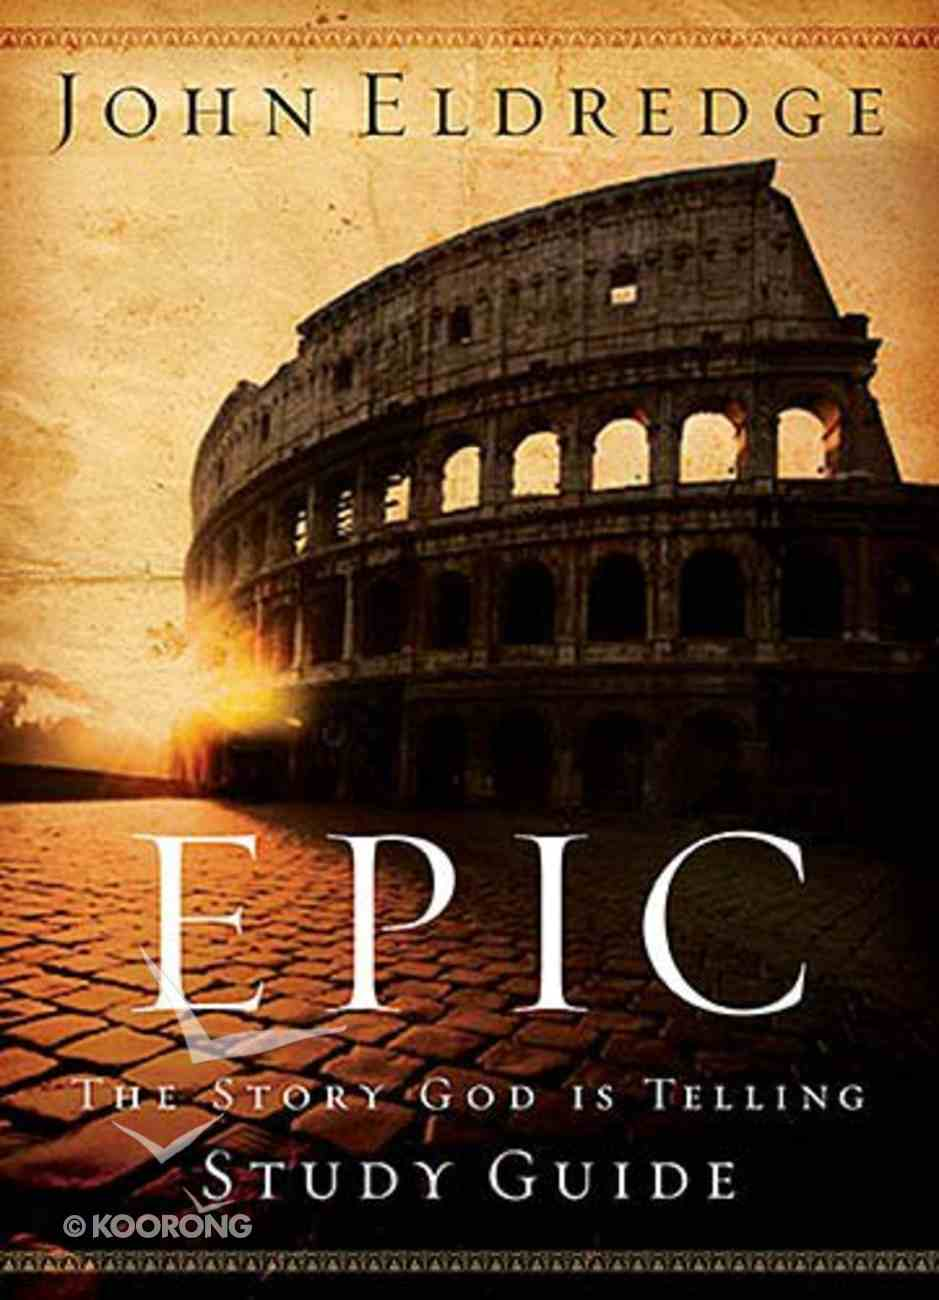 Epic (Study Guide) Paperback